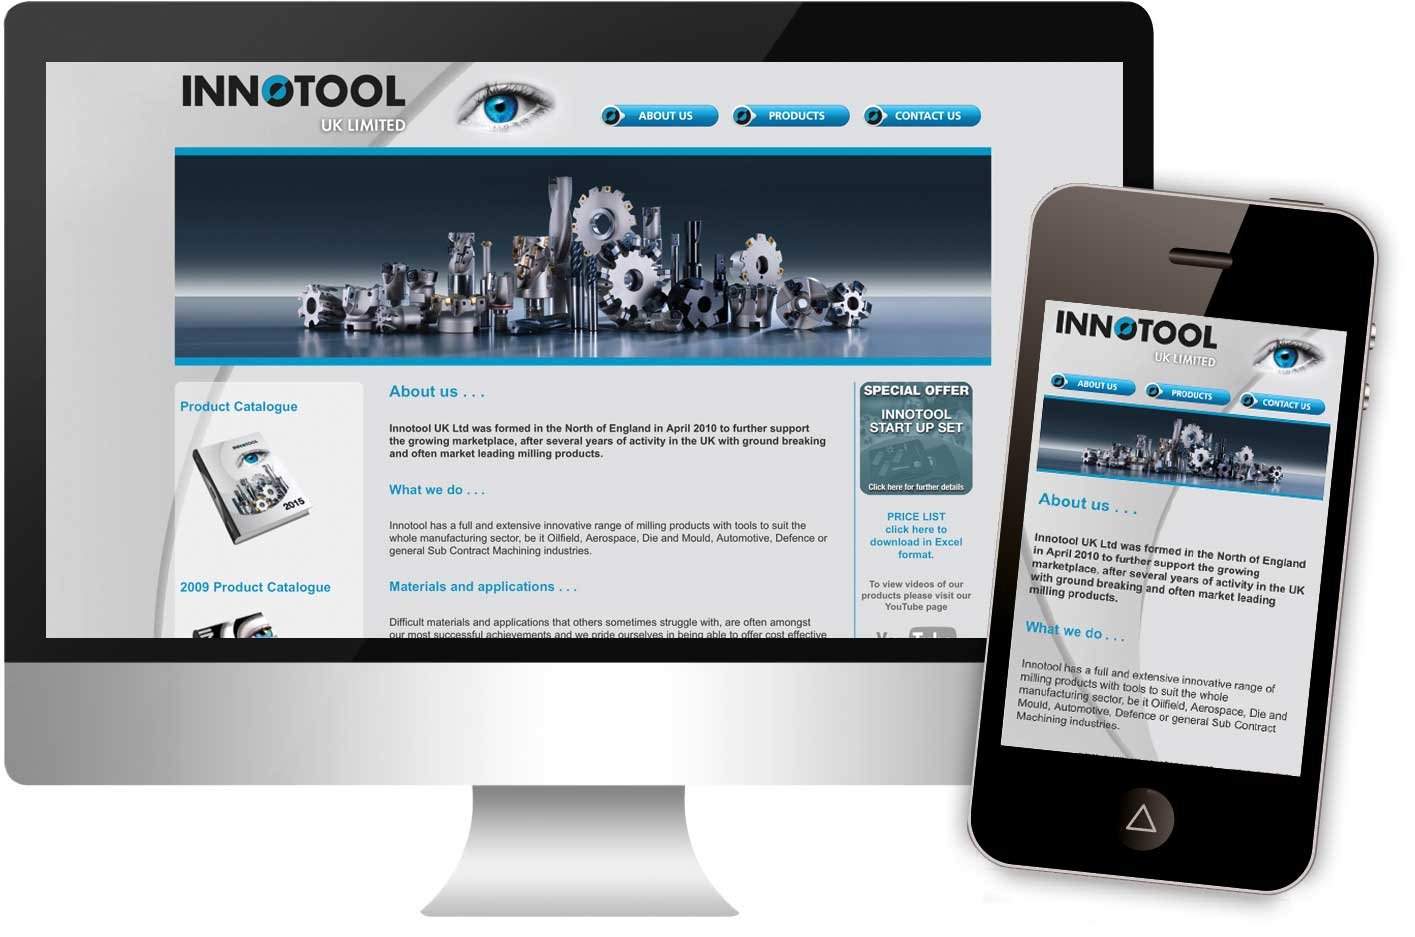 Innotool Uk Limited website, launched in January 2016, responsive web design.